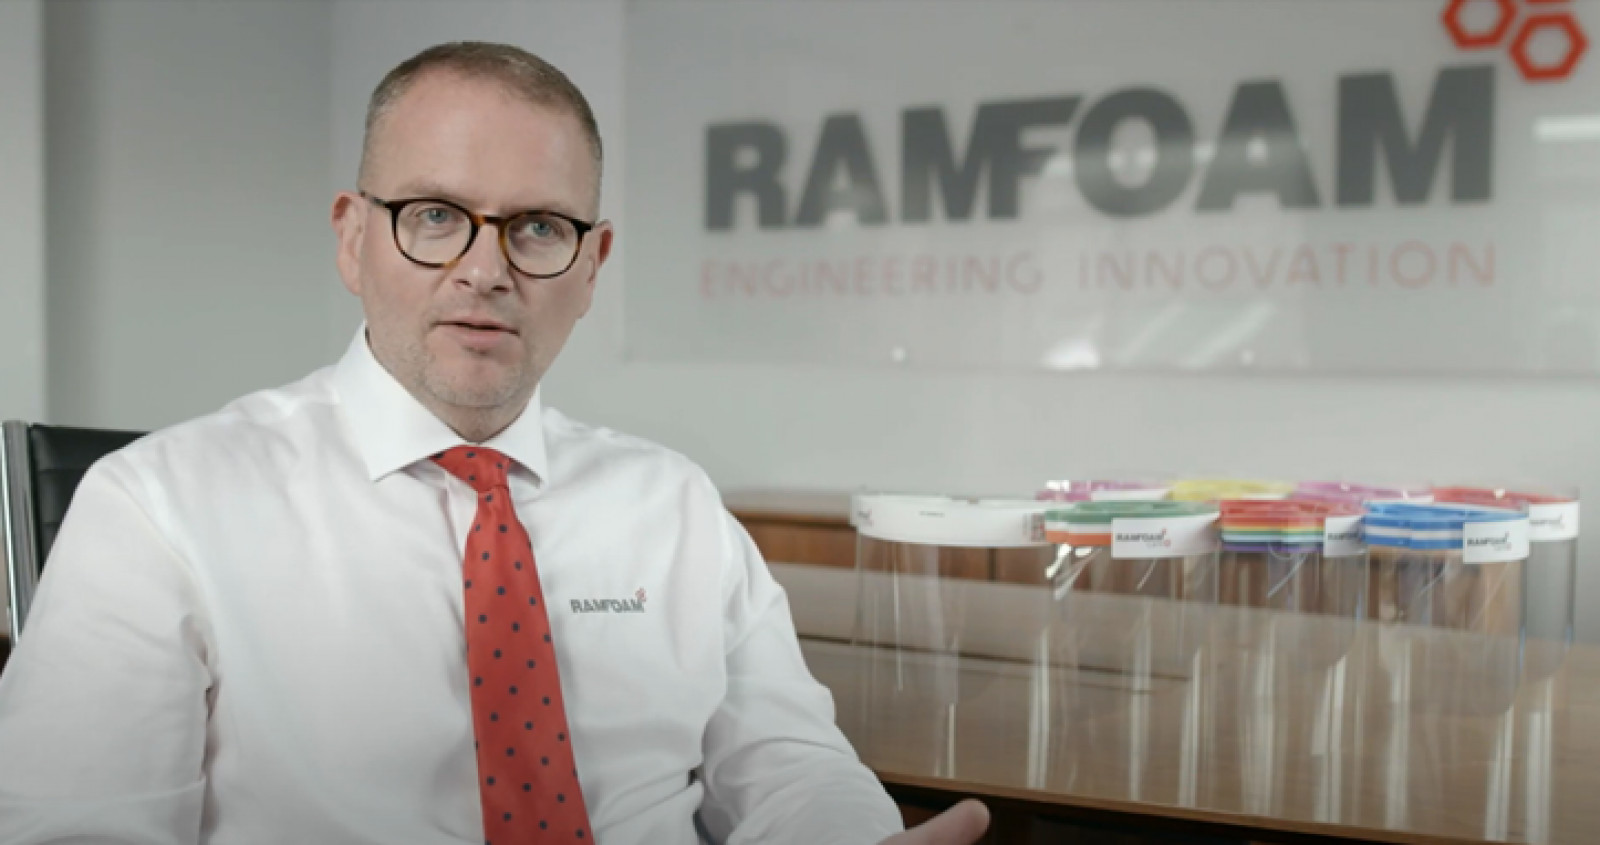 Ramfoam creates over 500 jobs in 2020 and plans to continue recruiting